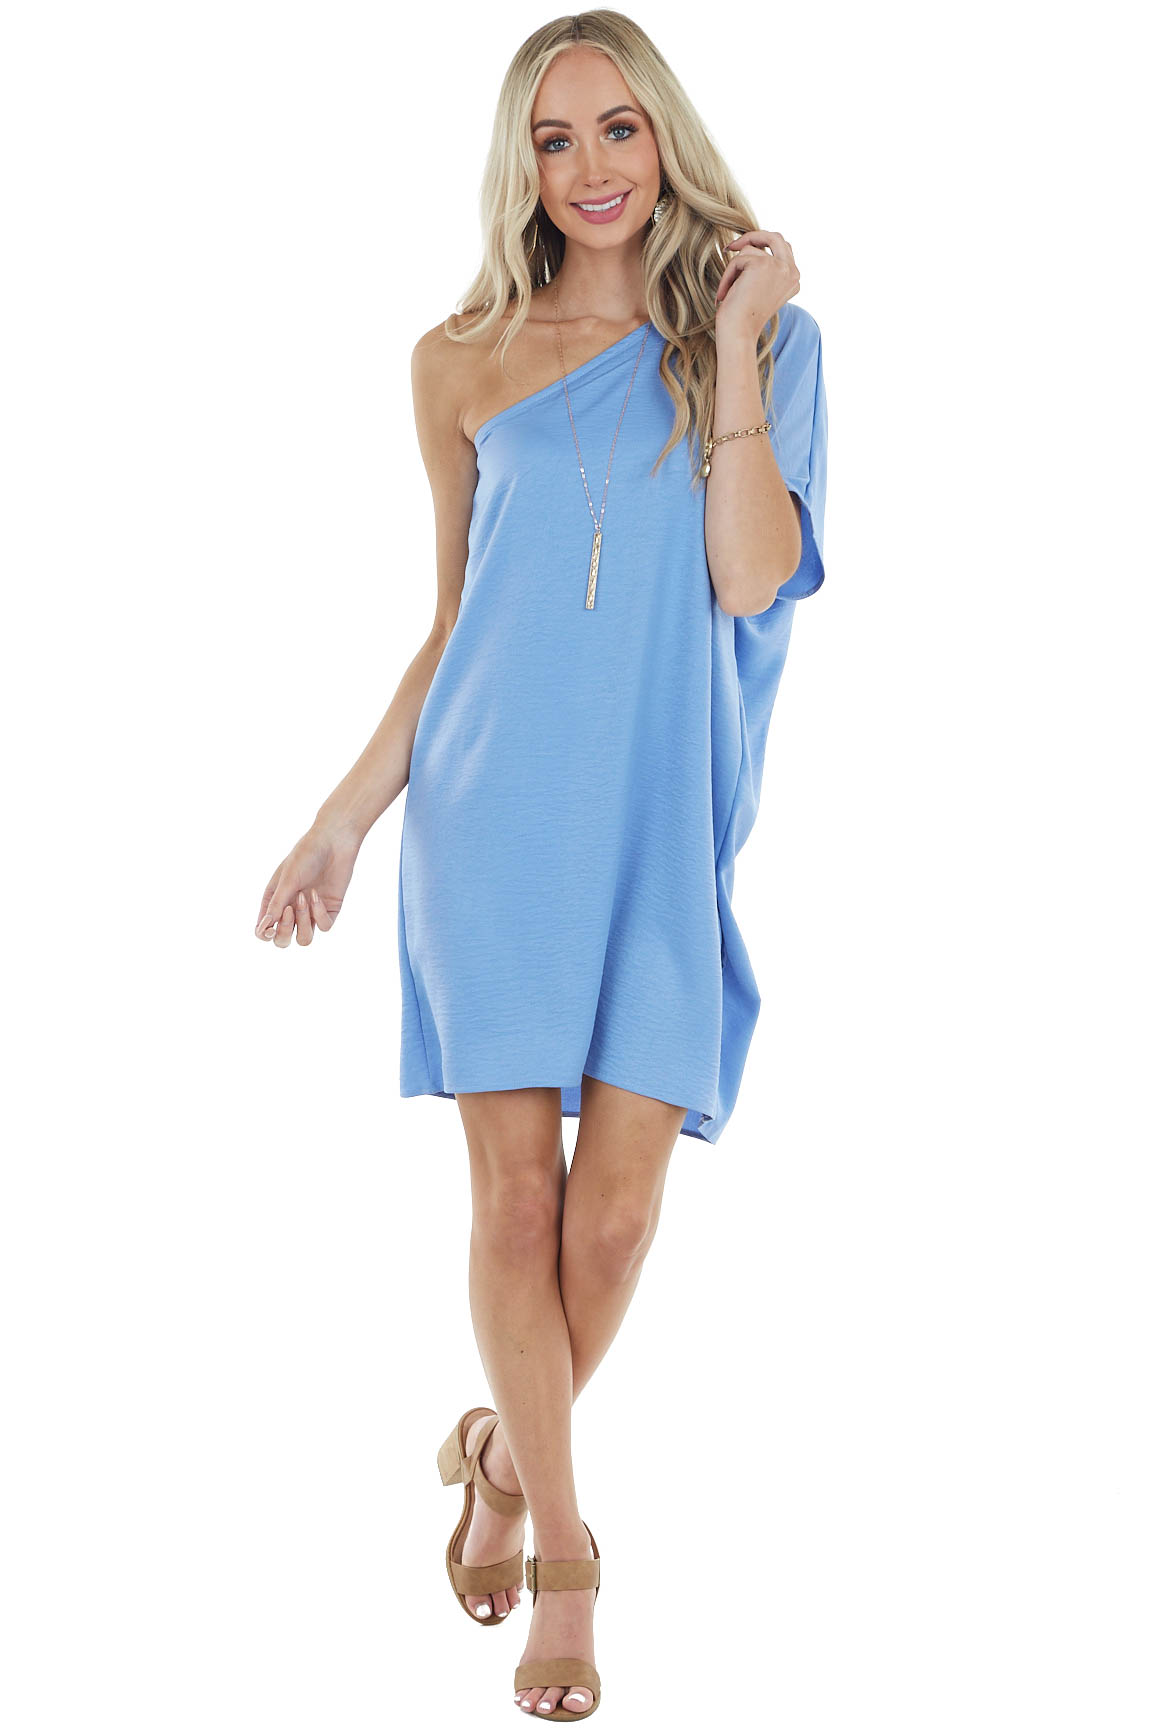 Dusty Blue Textured Shift Dress with Single Short Sleeve